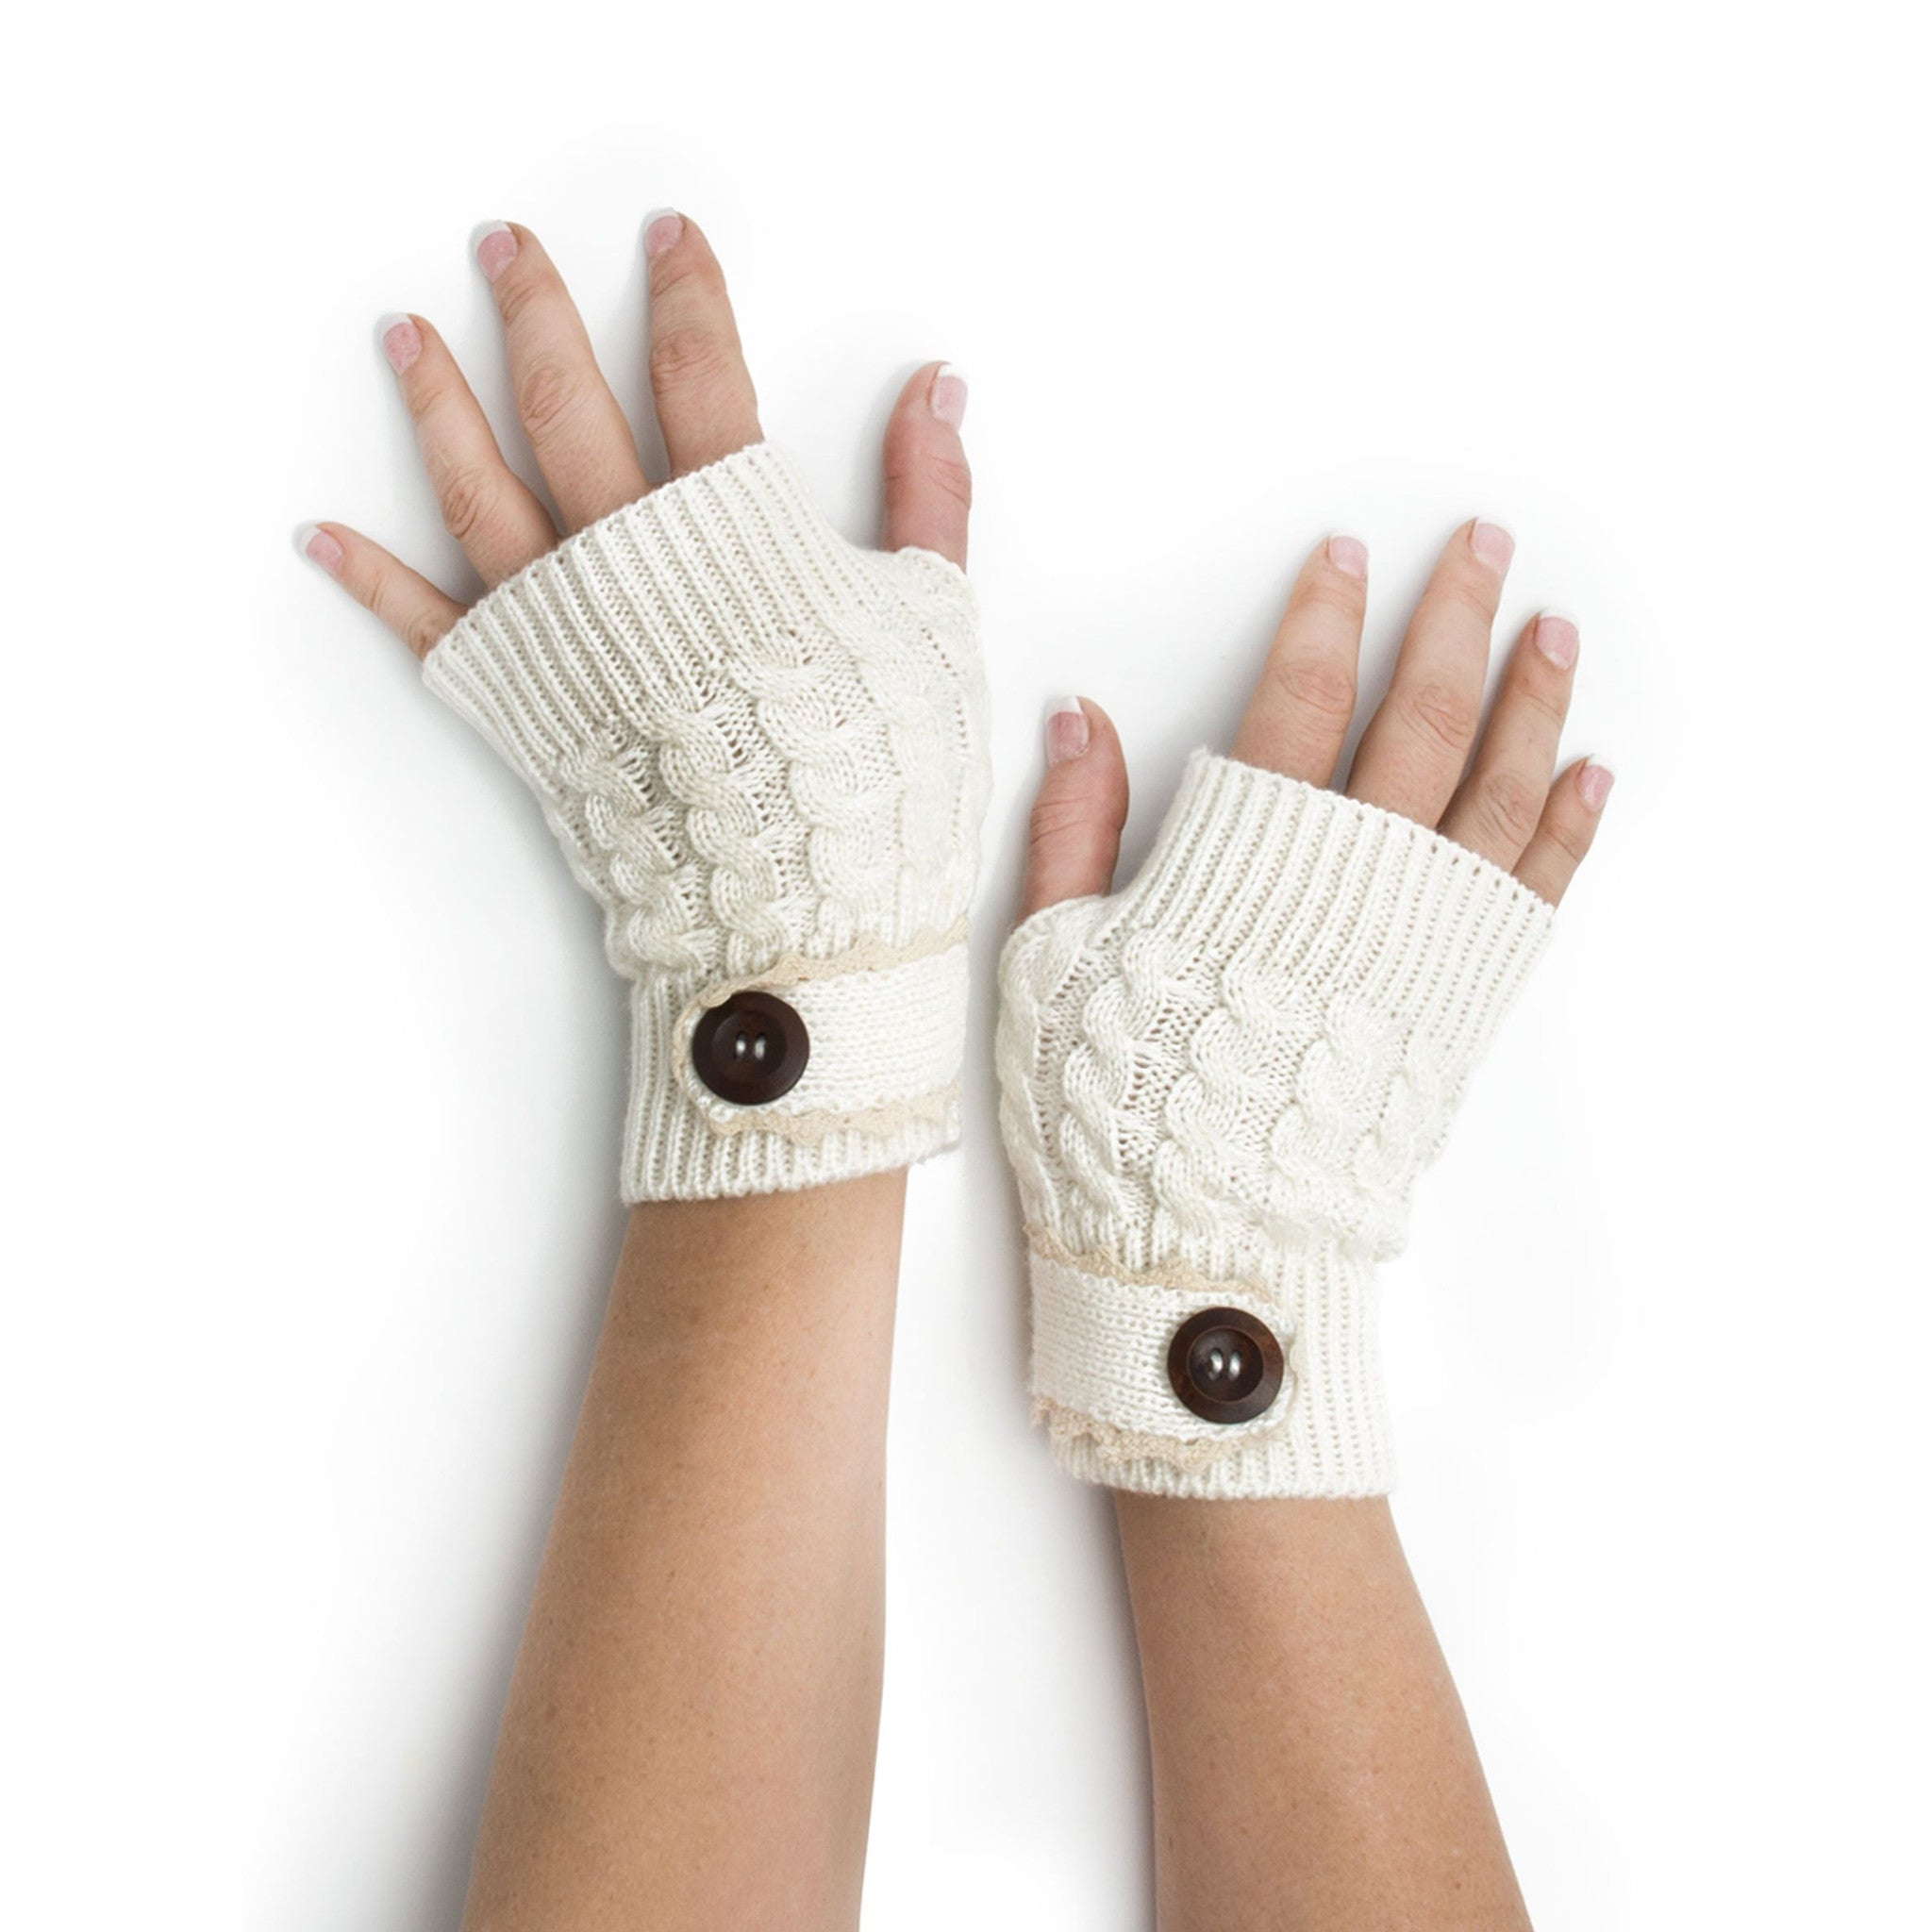 Armwarmers - Tawny Cable Knit Boho Mori Style Armwarmers / Fingerless Gloves with Crochet Lace -(Ivory) Bohomonde  - 5